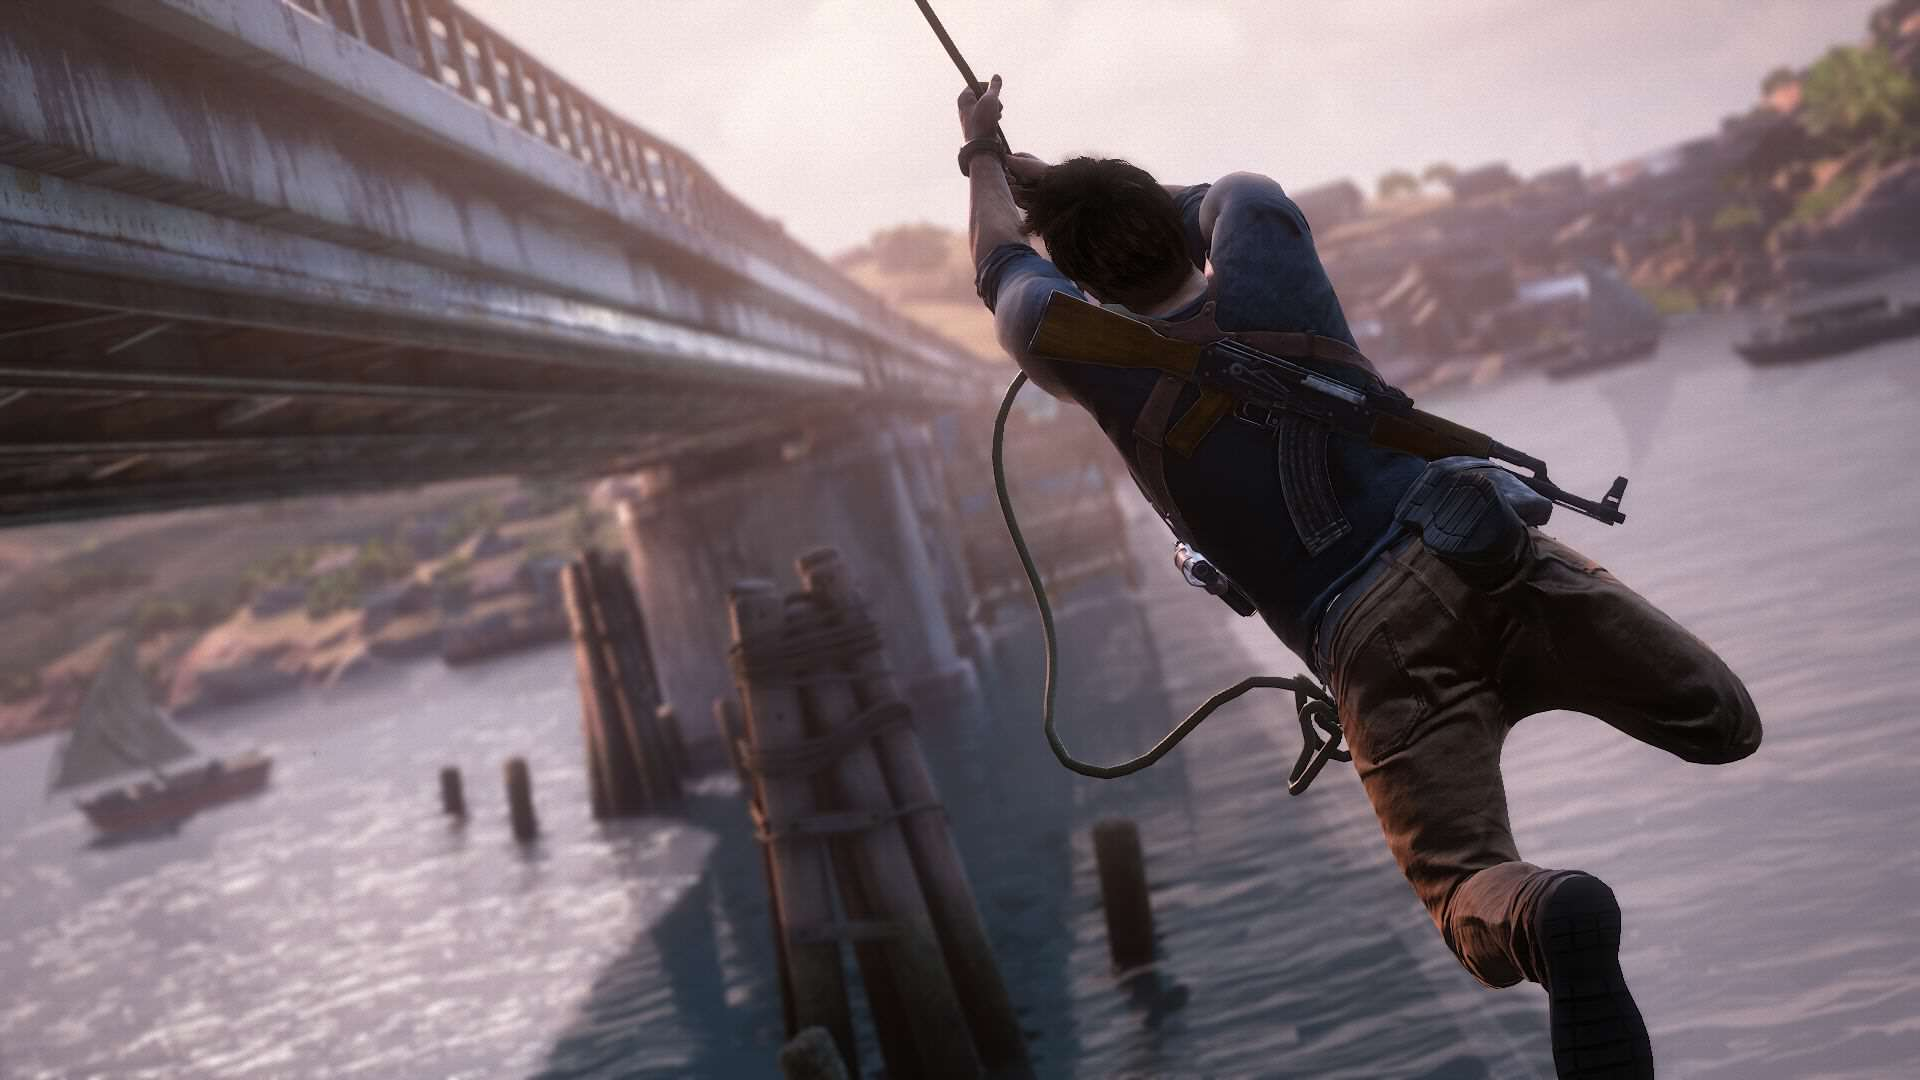 2759115 uncharted 4 drake rope bridge 1434429051 Who Should Play Drake In The Uncharted Movie?